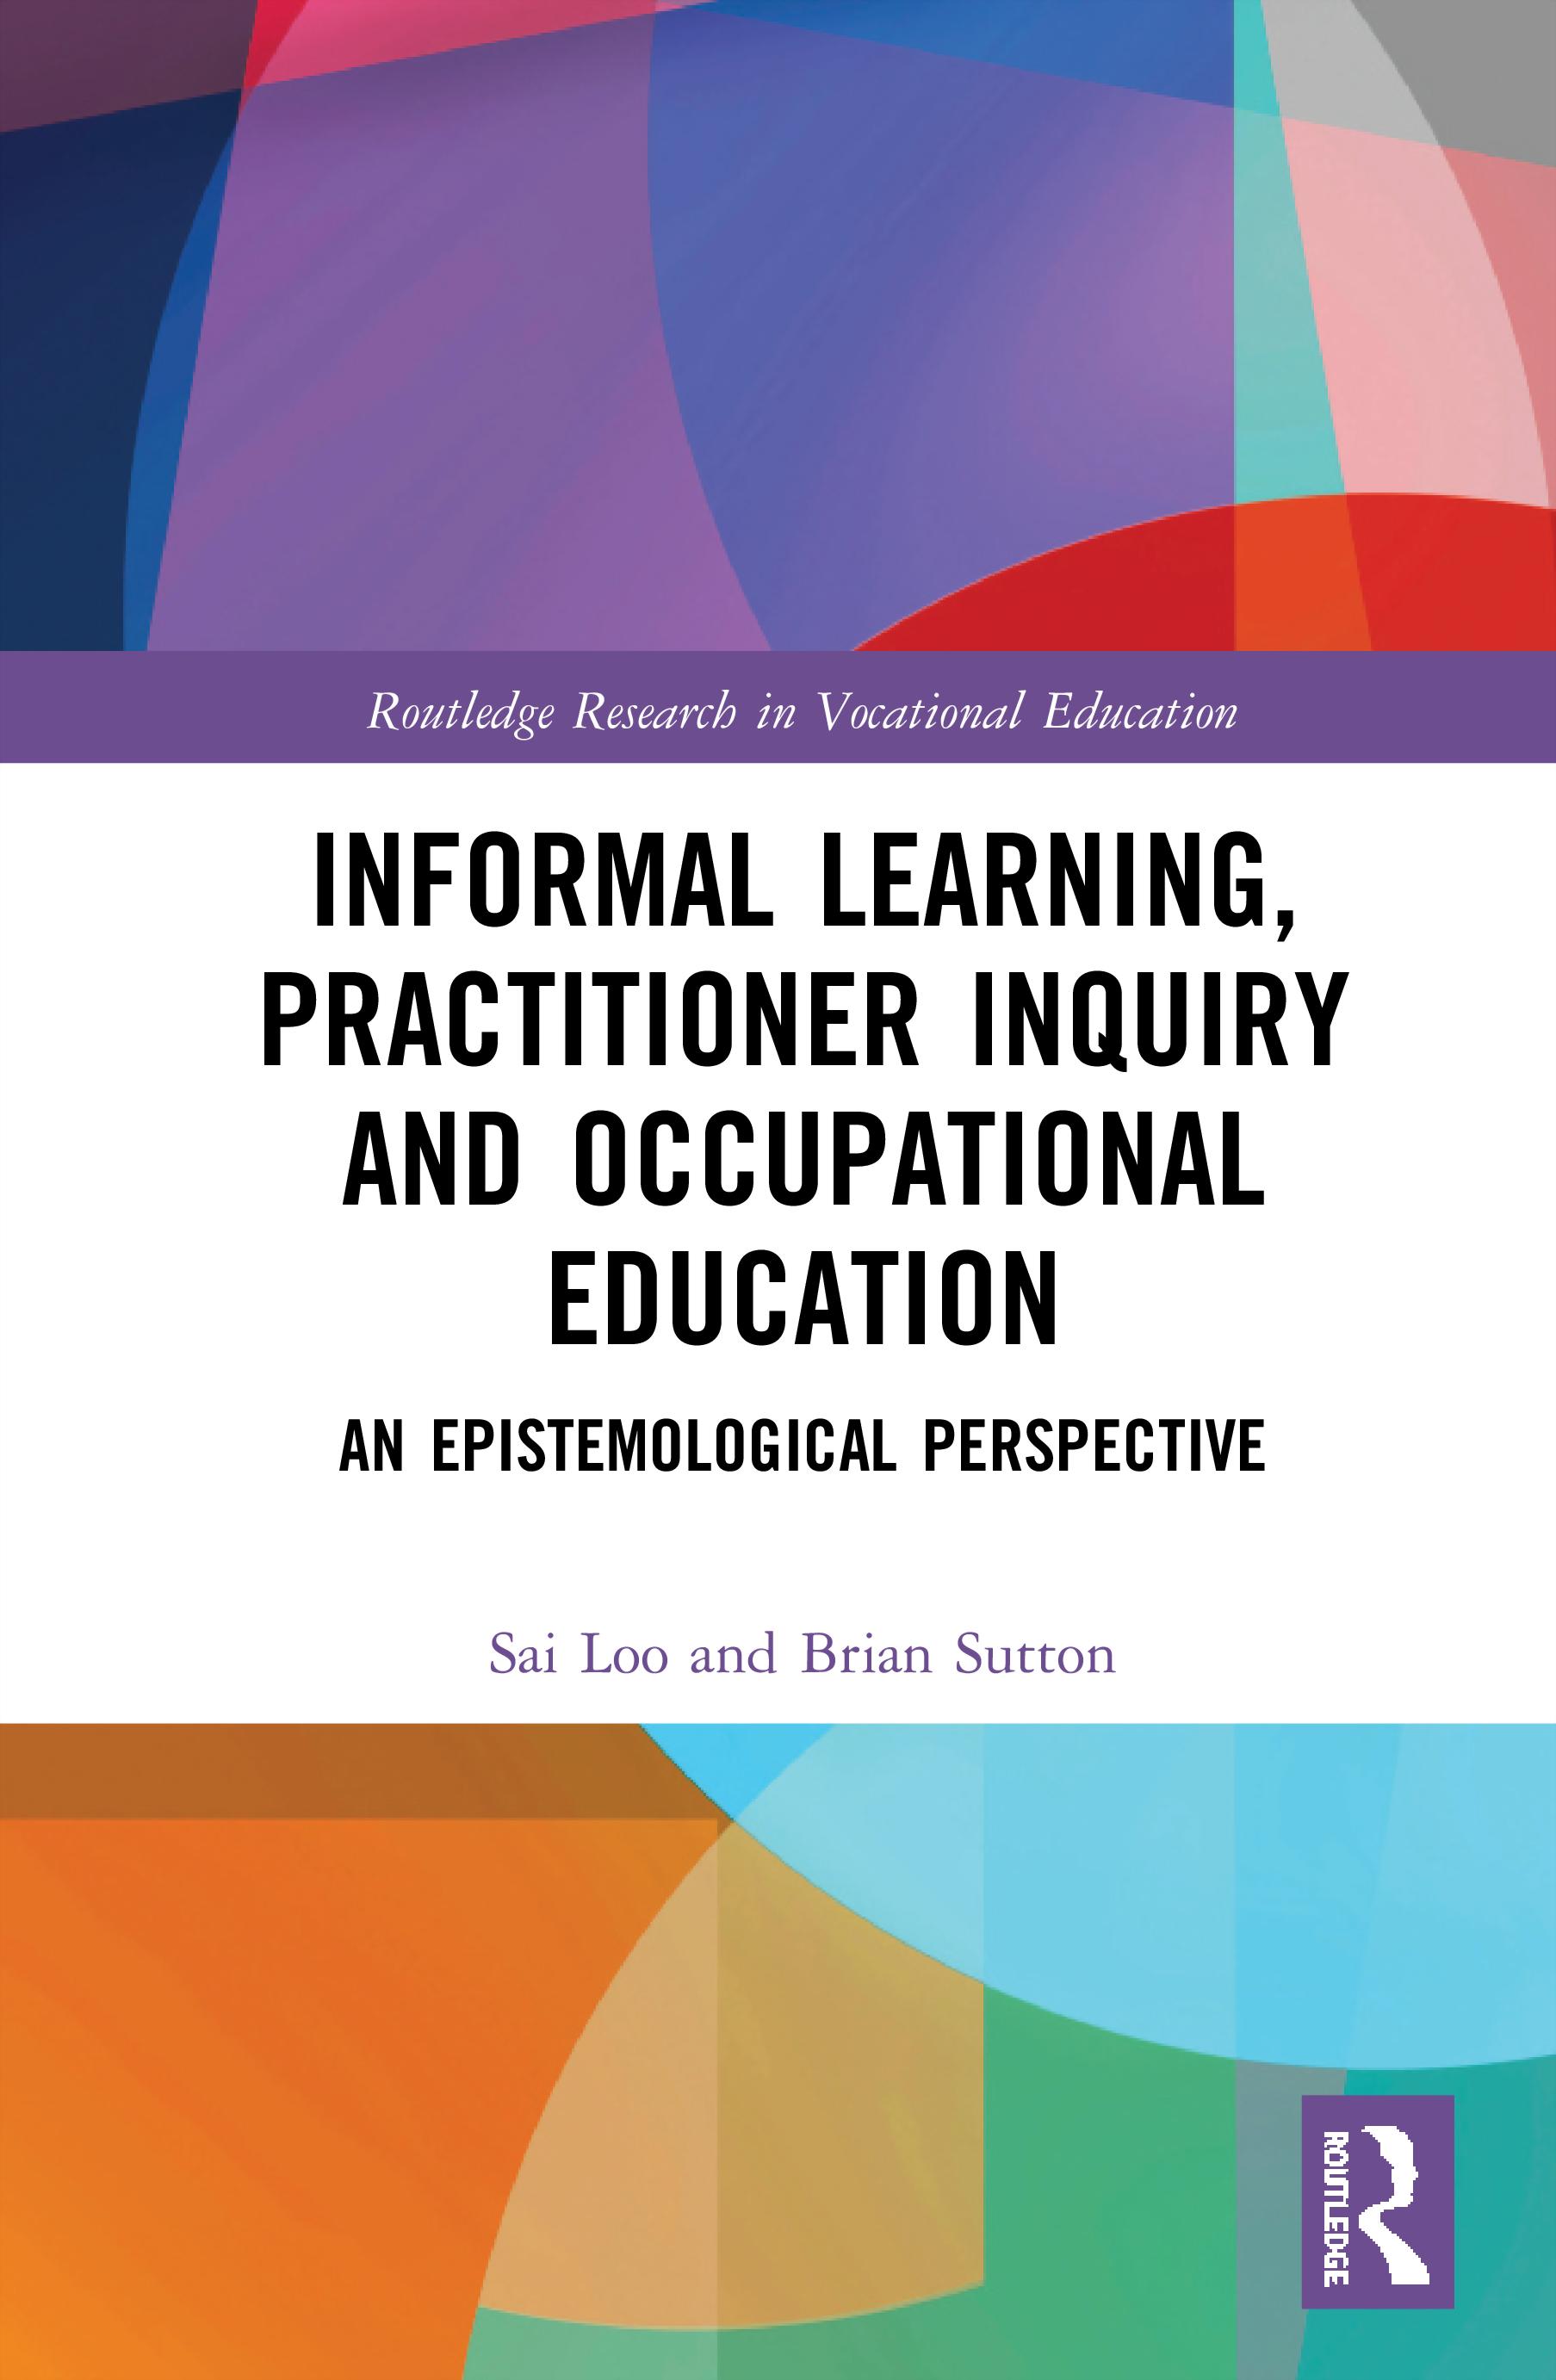 Informal Learning, Practitioner Inquiry and Occupational Education: An Epistemological Perspective book cover